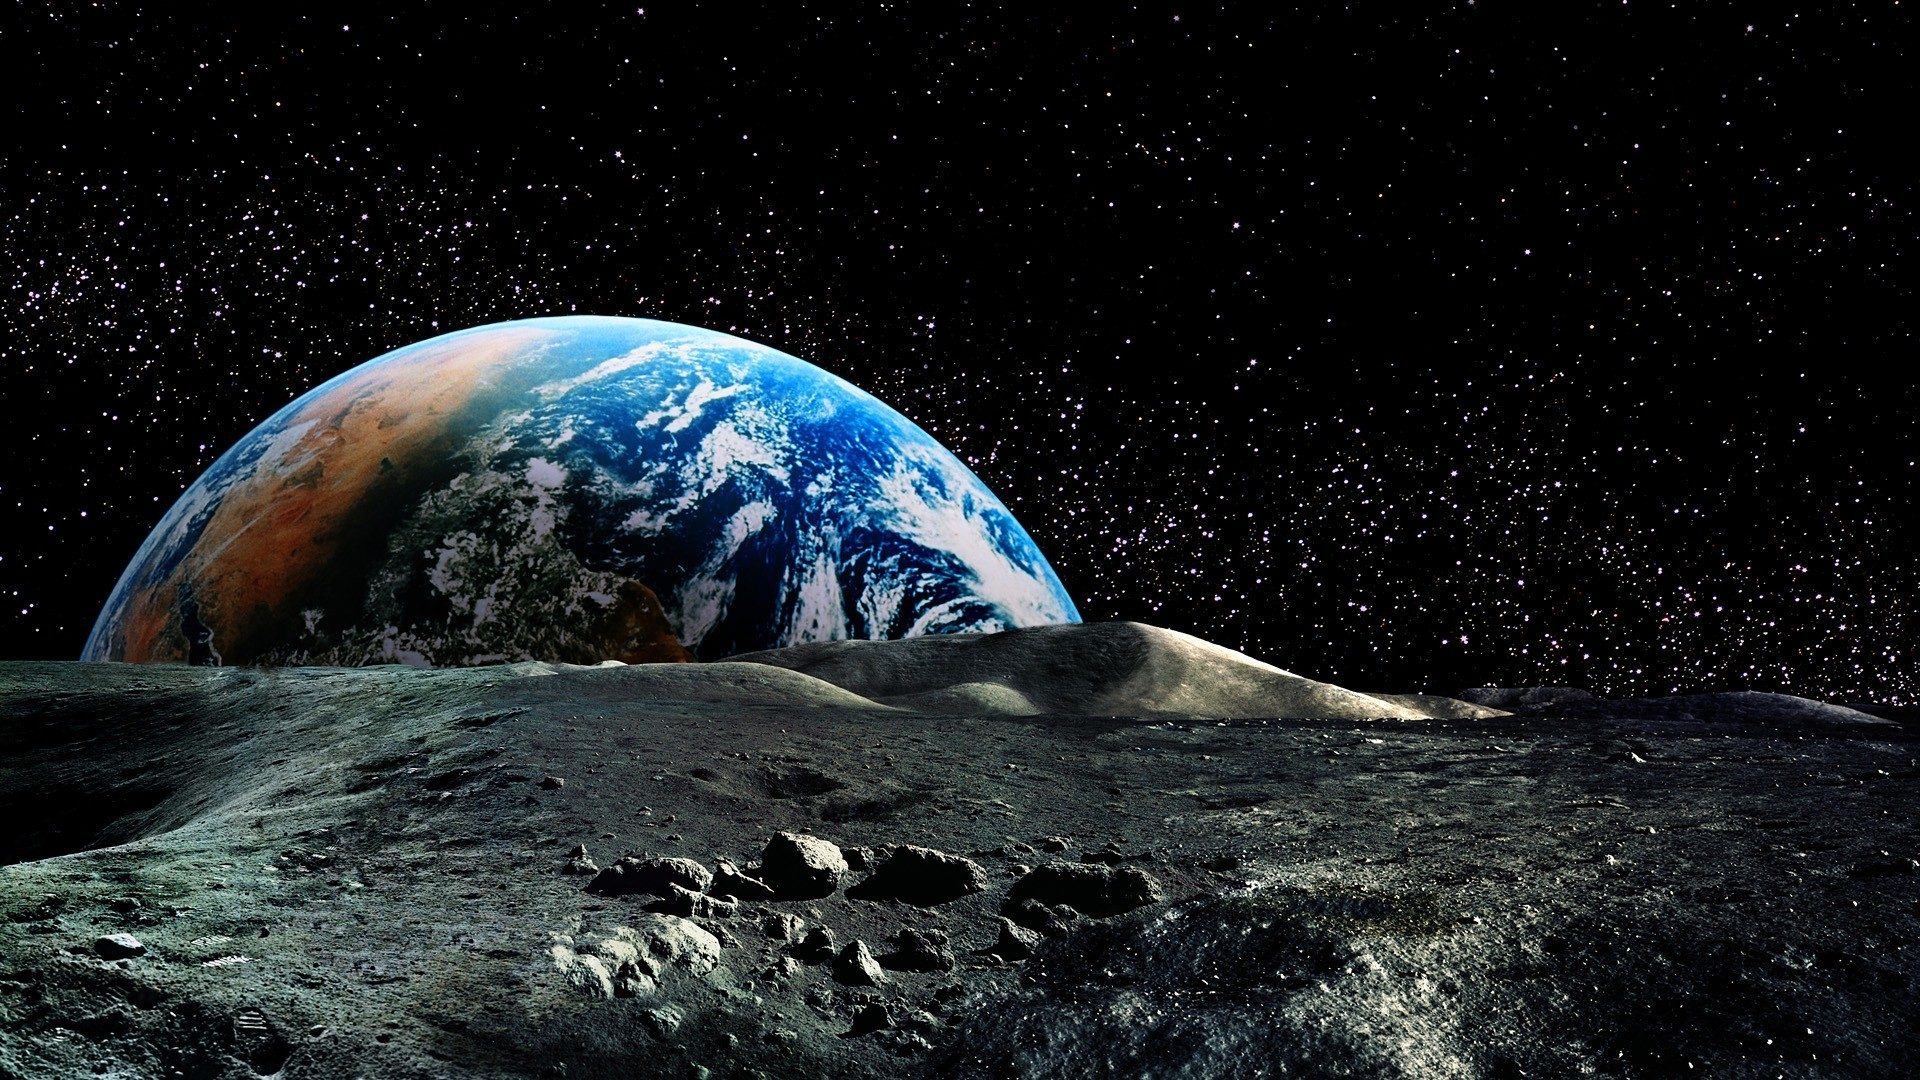 Earth Wallpaper Full Hd: Earth From Moon Wallpaper (62+ Images